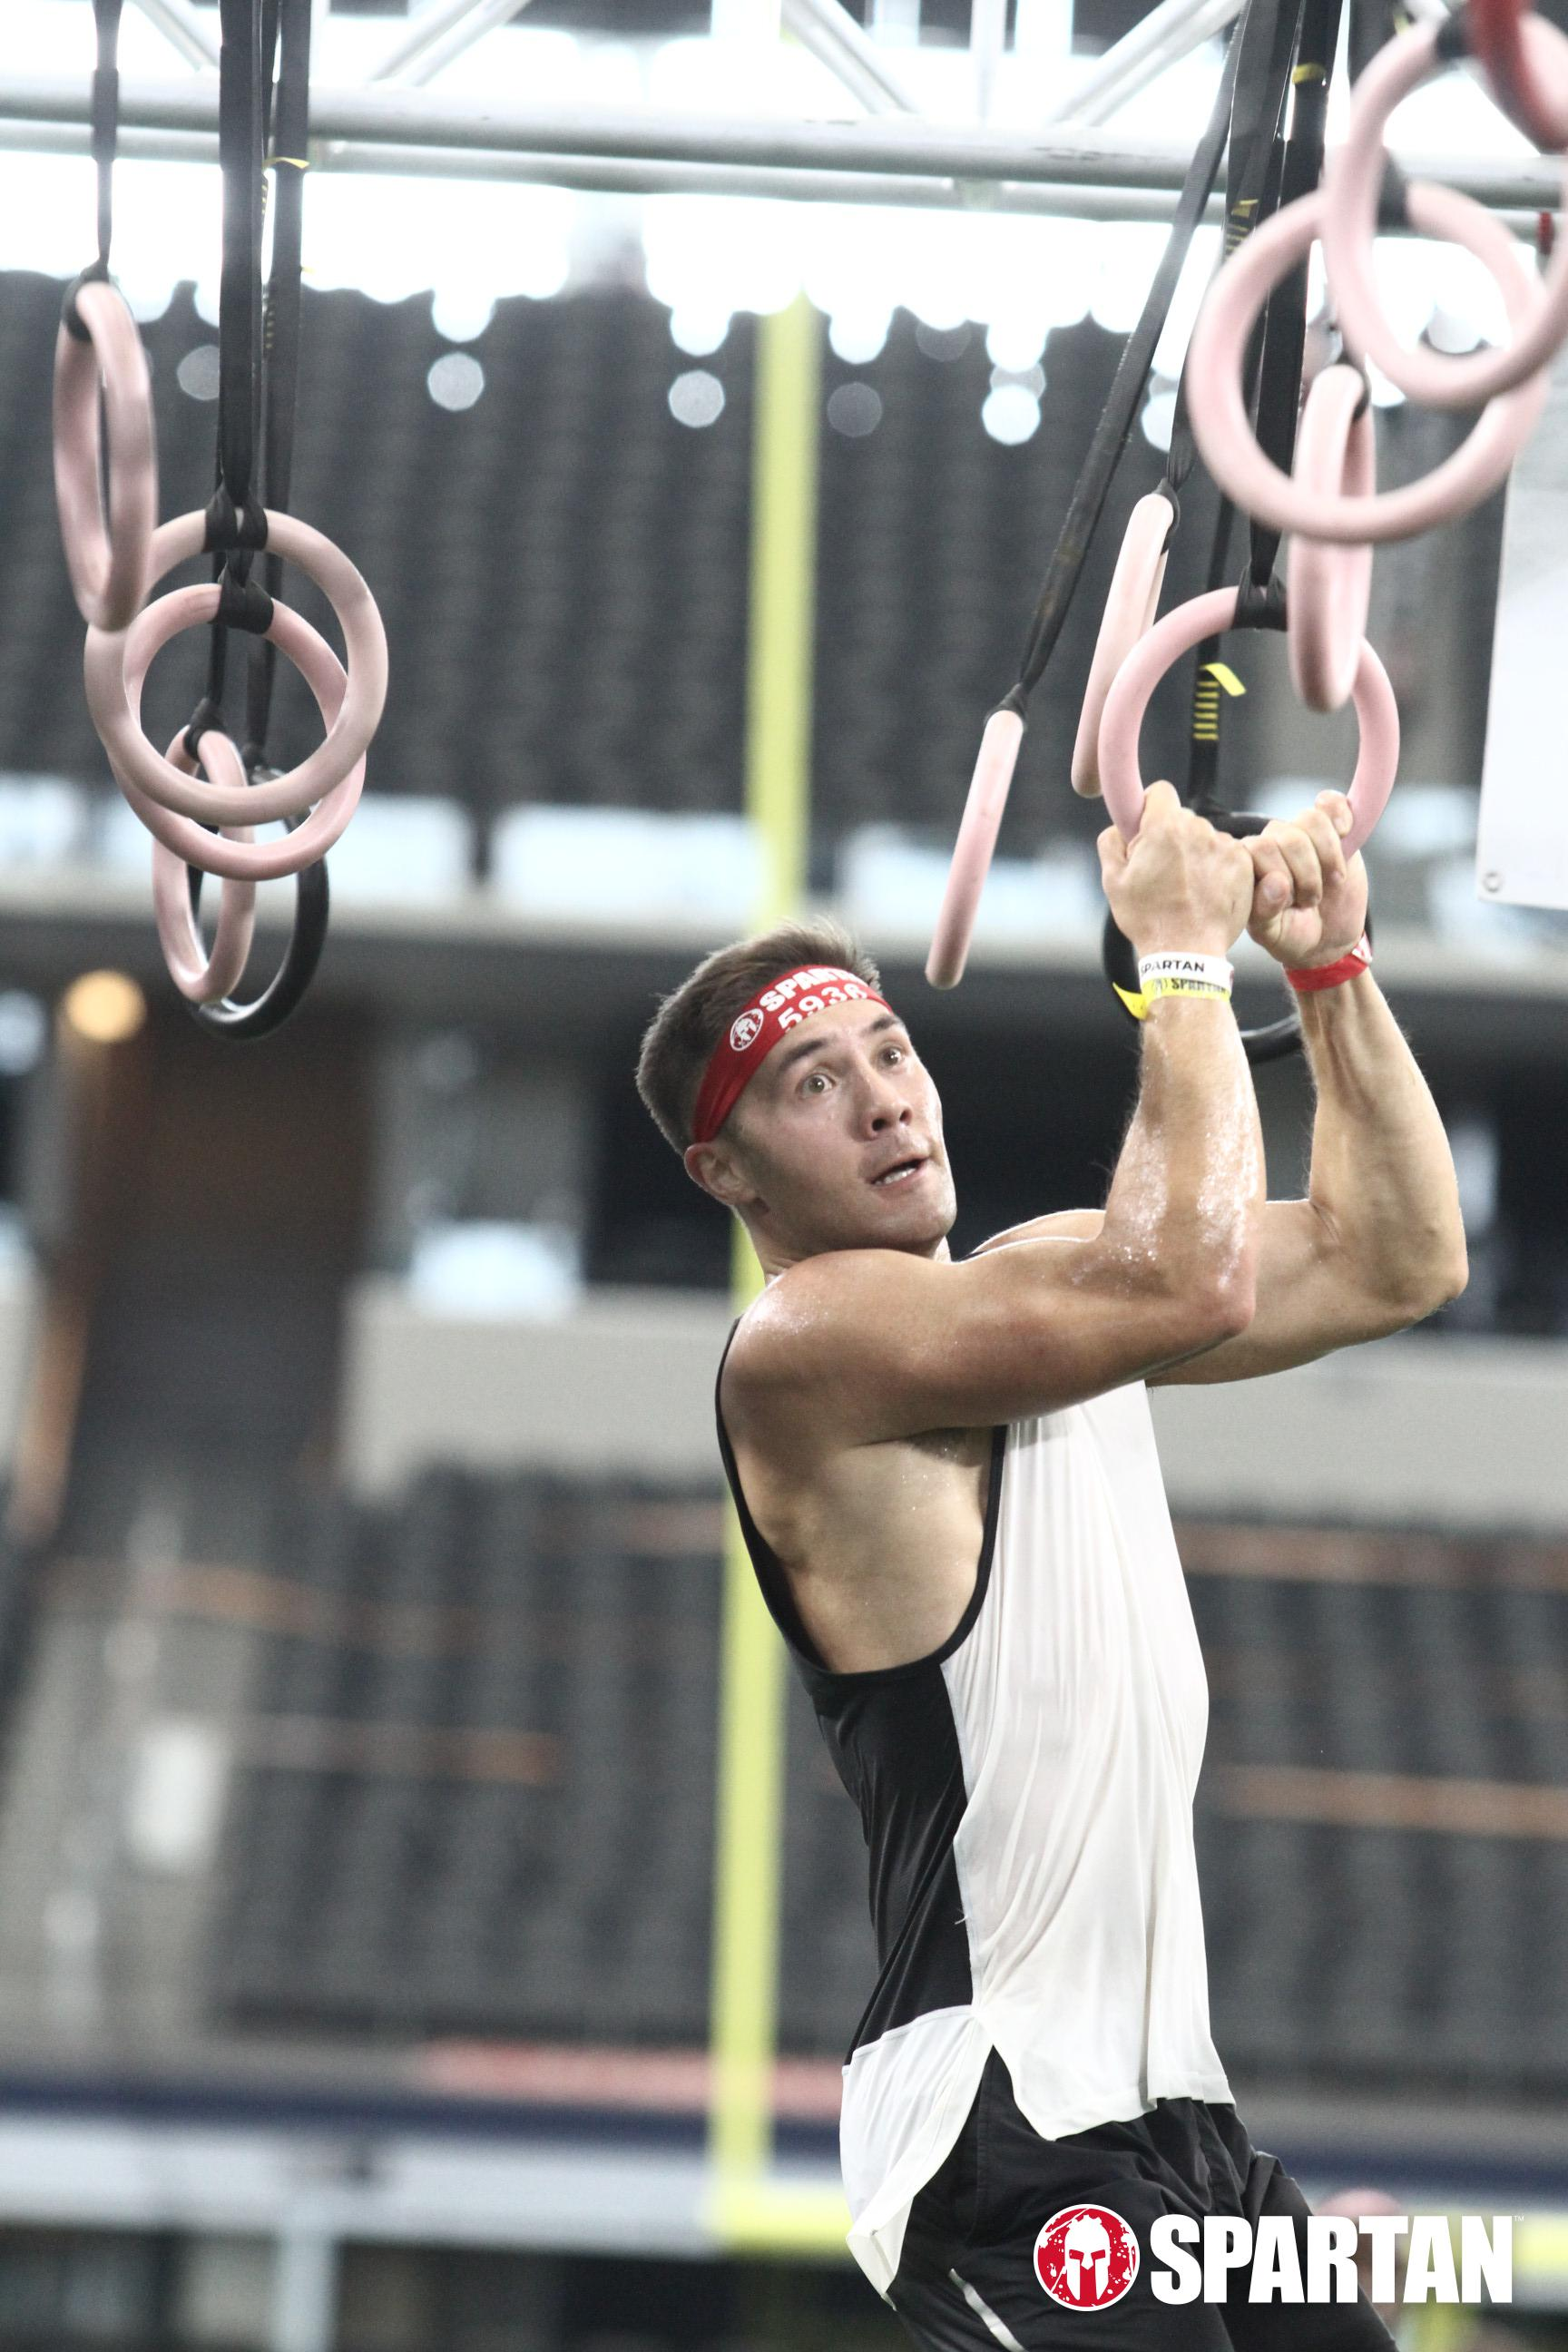 The Rings was the last obstacle standing between me and the finish line at the Dallas Spartan Race Stadium Sprint.